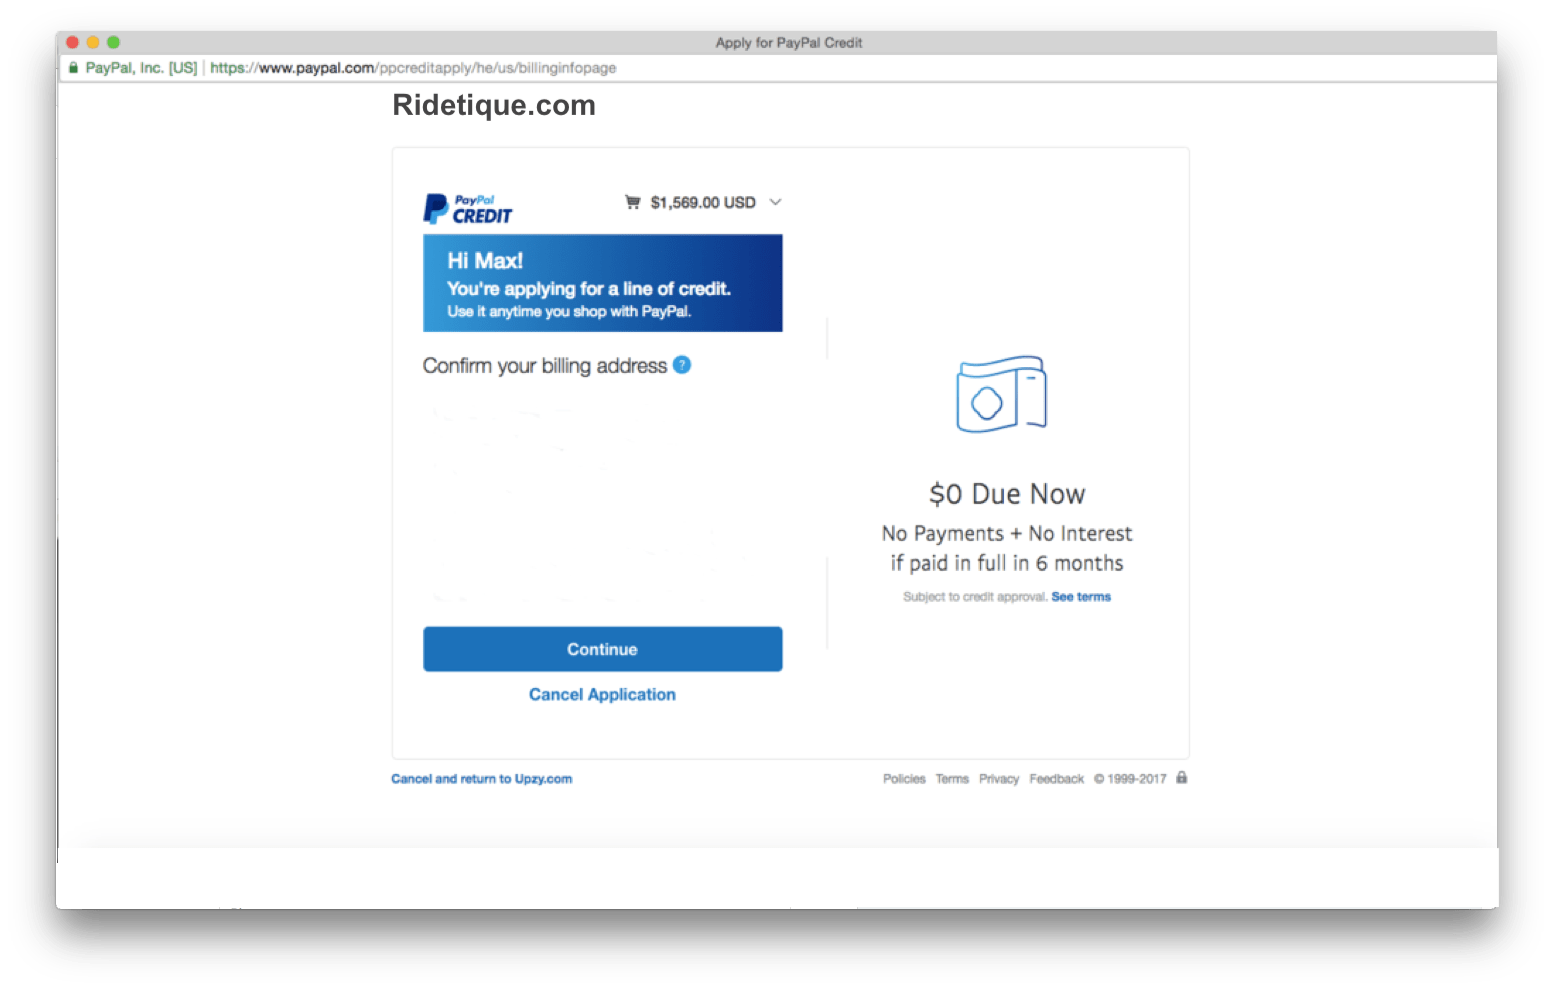 Financing with PayPal Credit – Ridetique